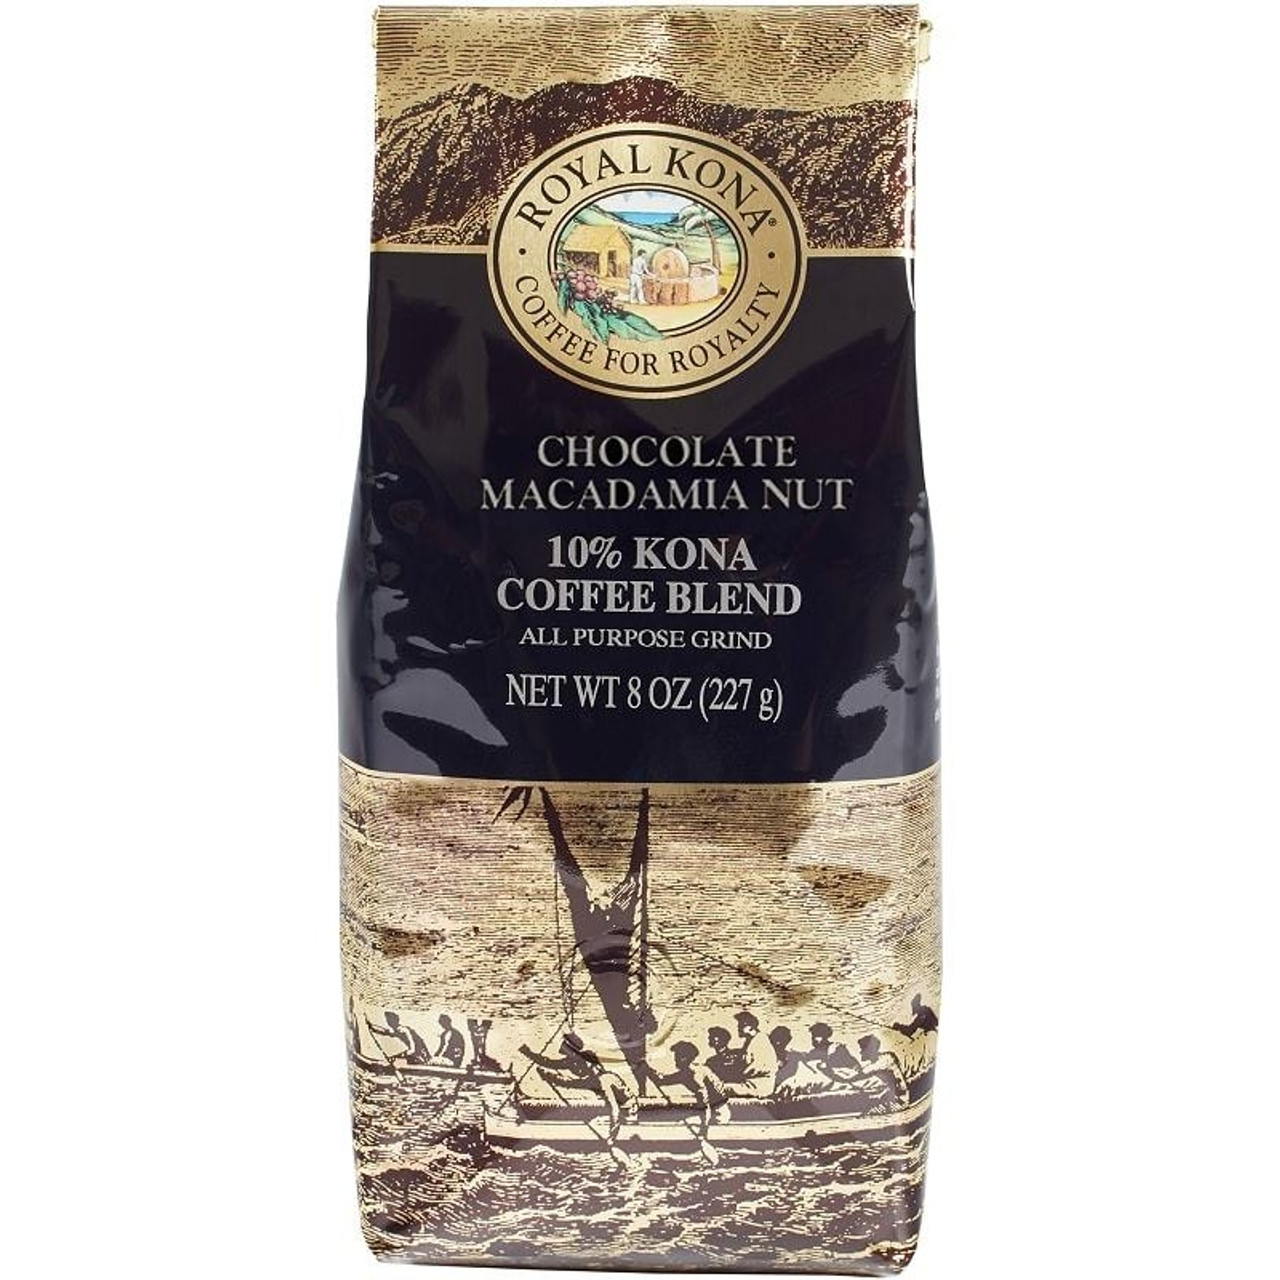 Royal Kona Chocolate Macadamia